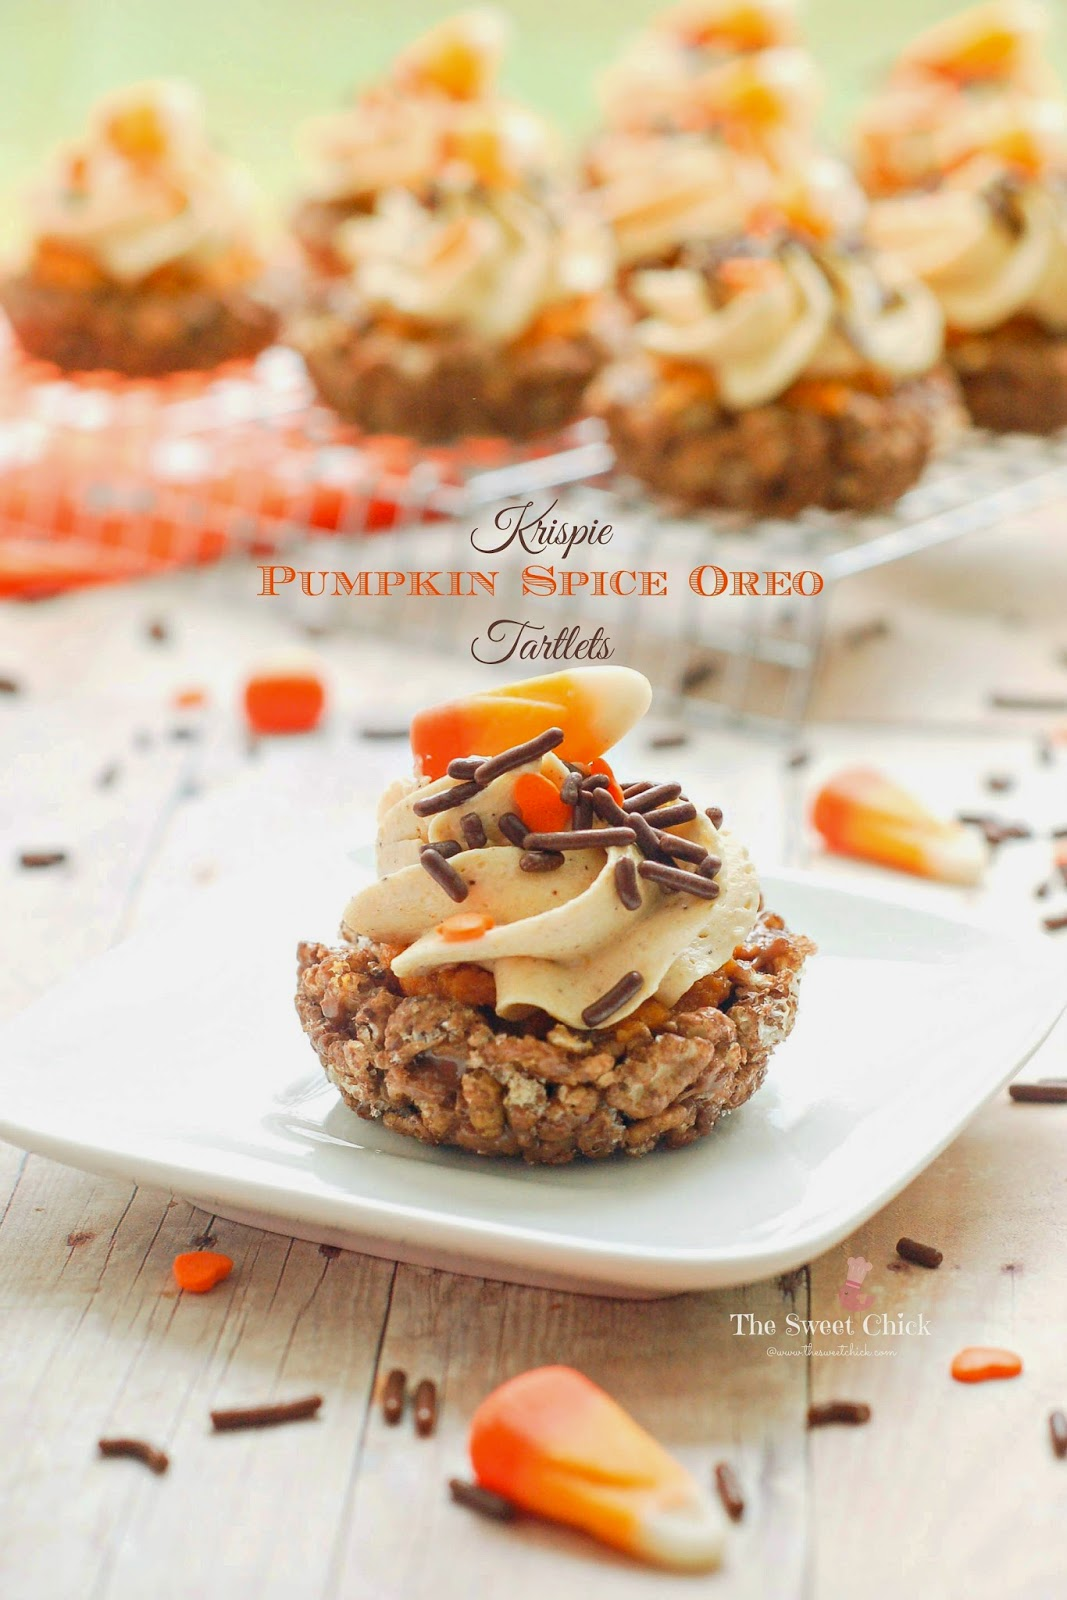 Krispie Pumpkin Spice Oreo Tartlets by The Sweet Chick